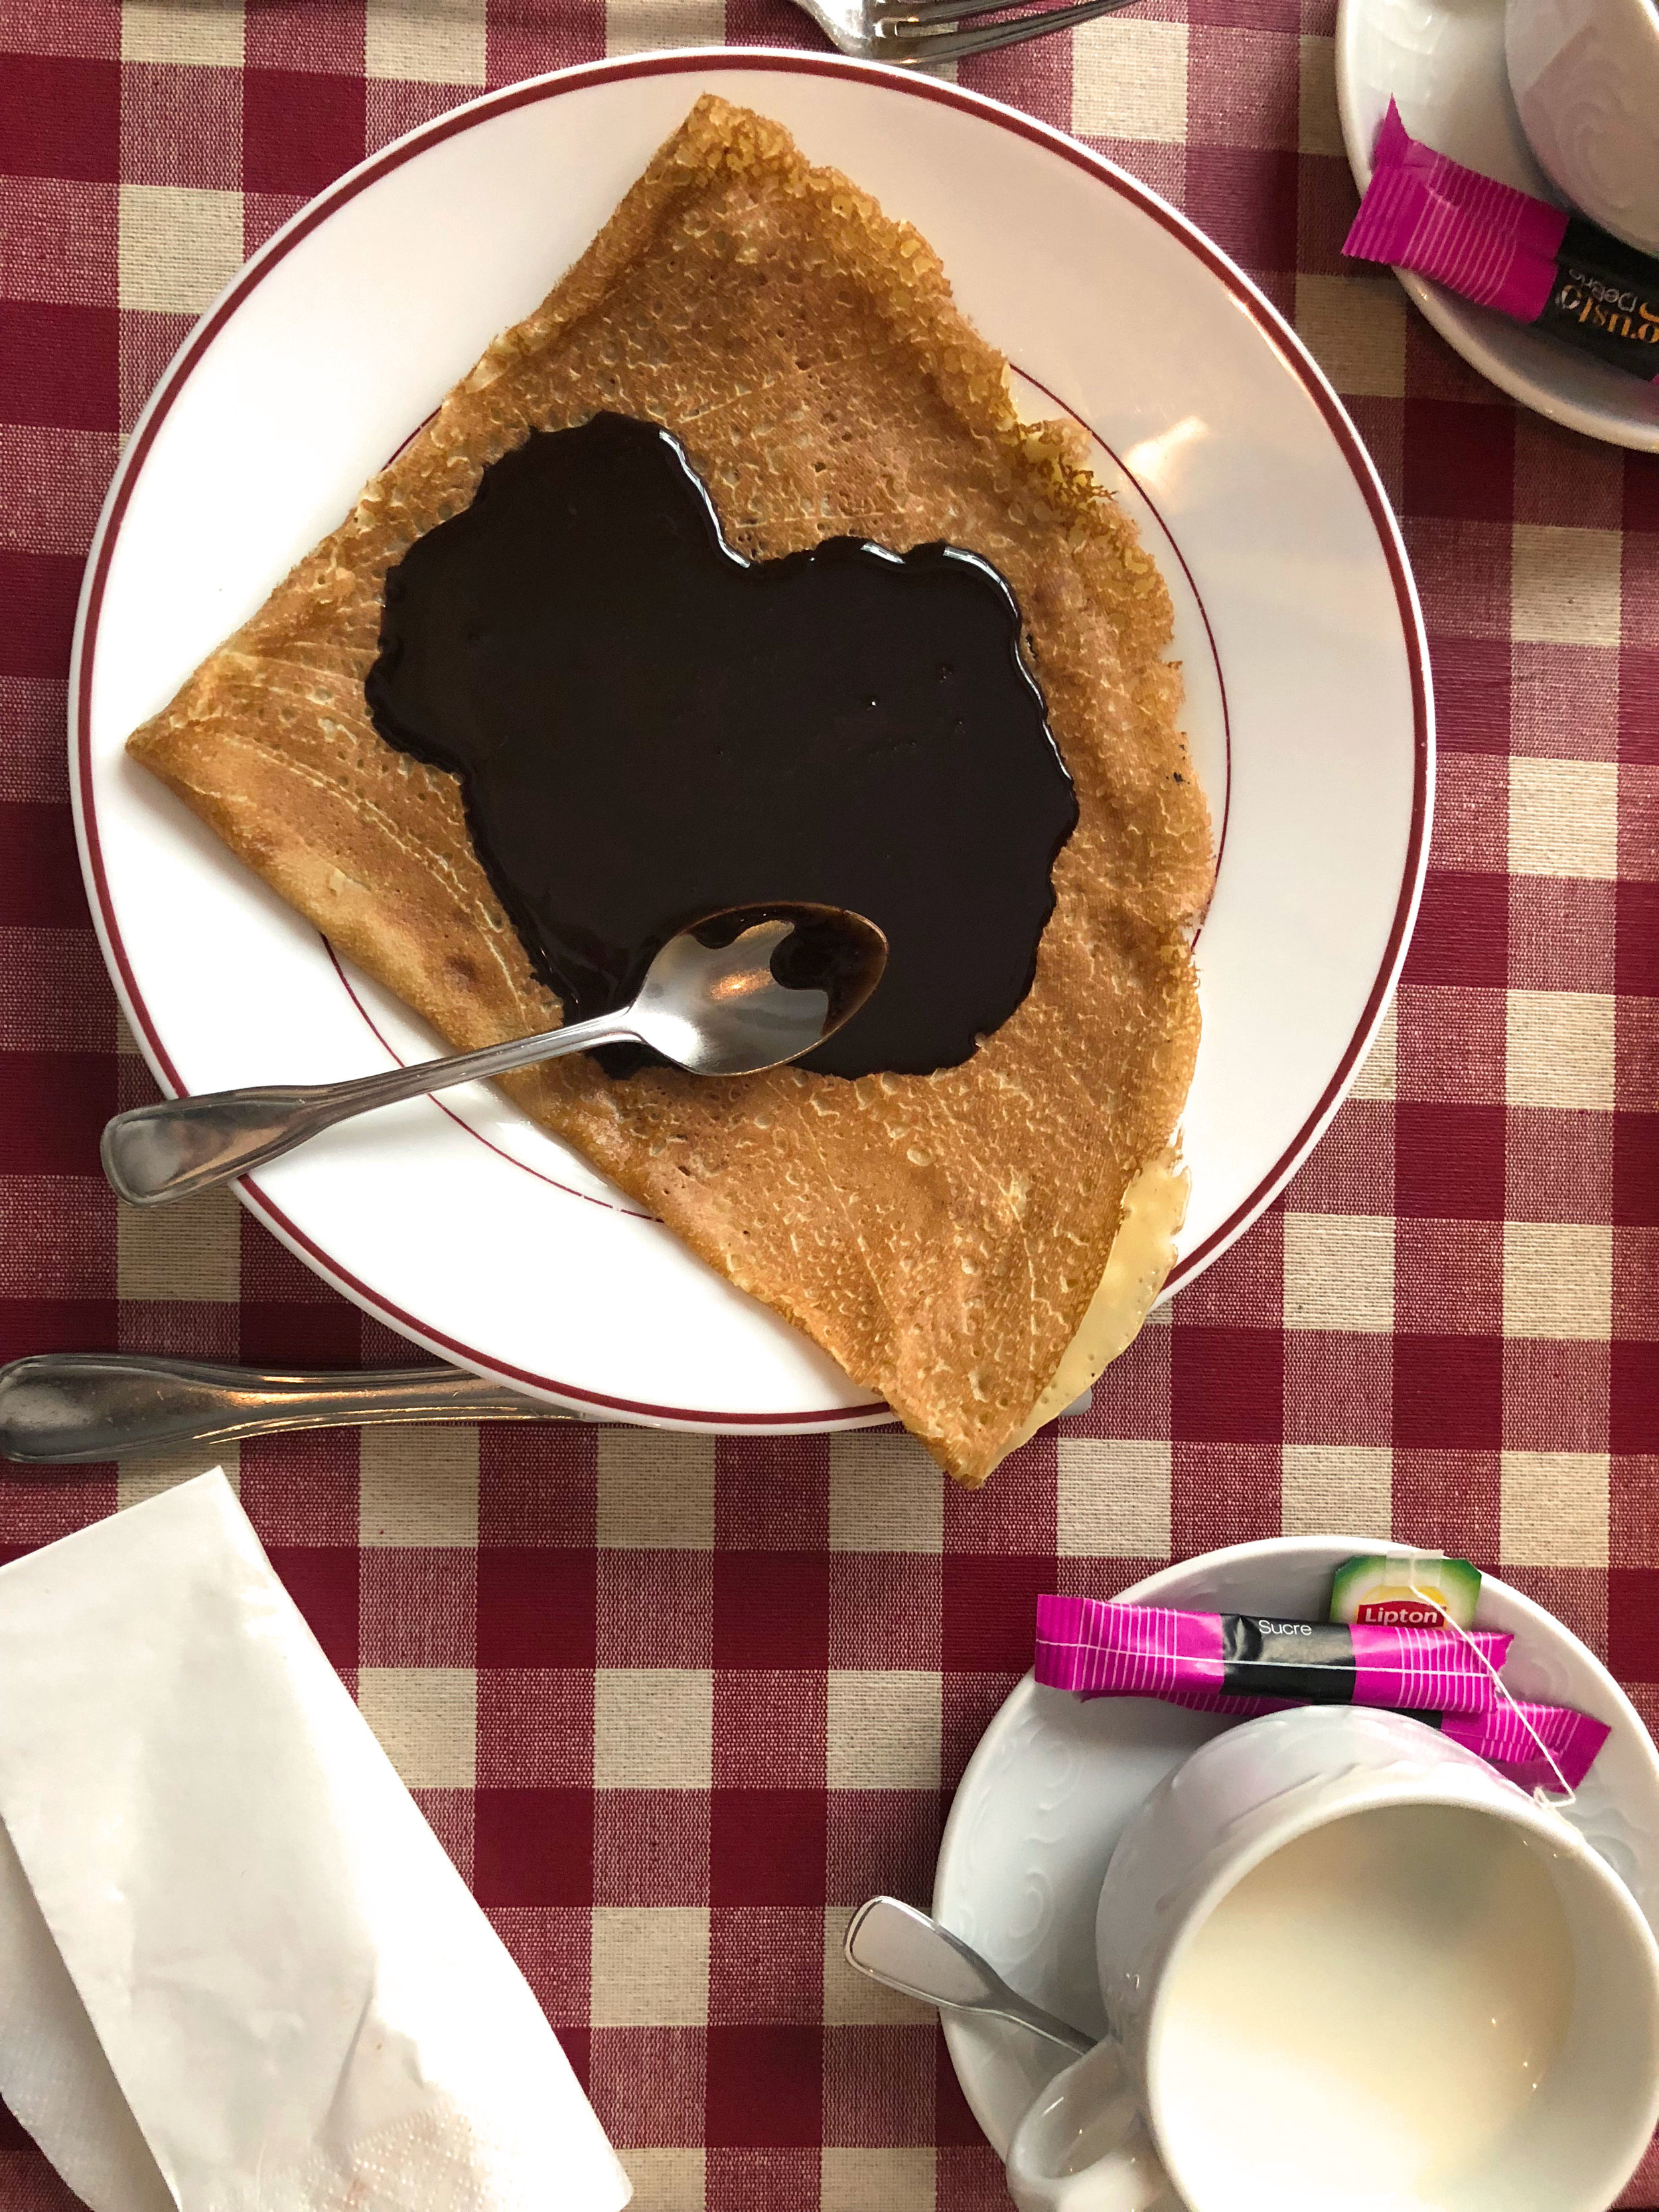 Thin, crispy crepe with homemade chocolate sauce. The Lipton tea they make in France is nothing like America - it's actually strangely good.